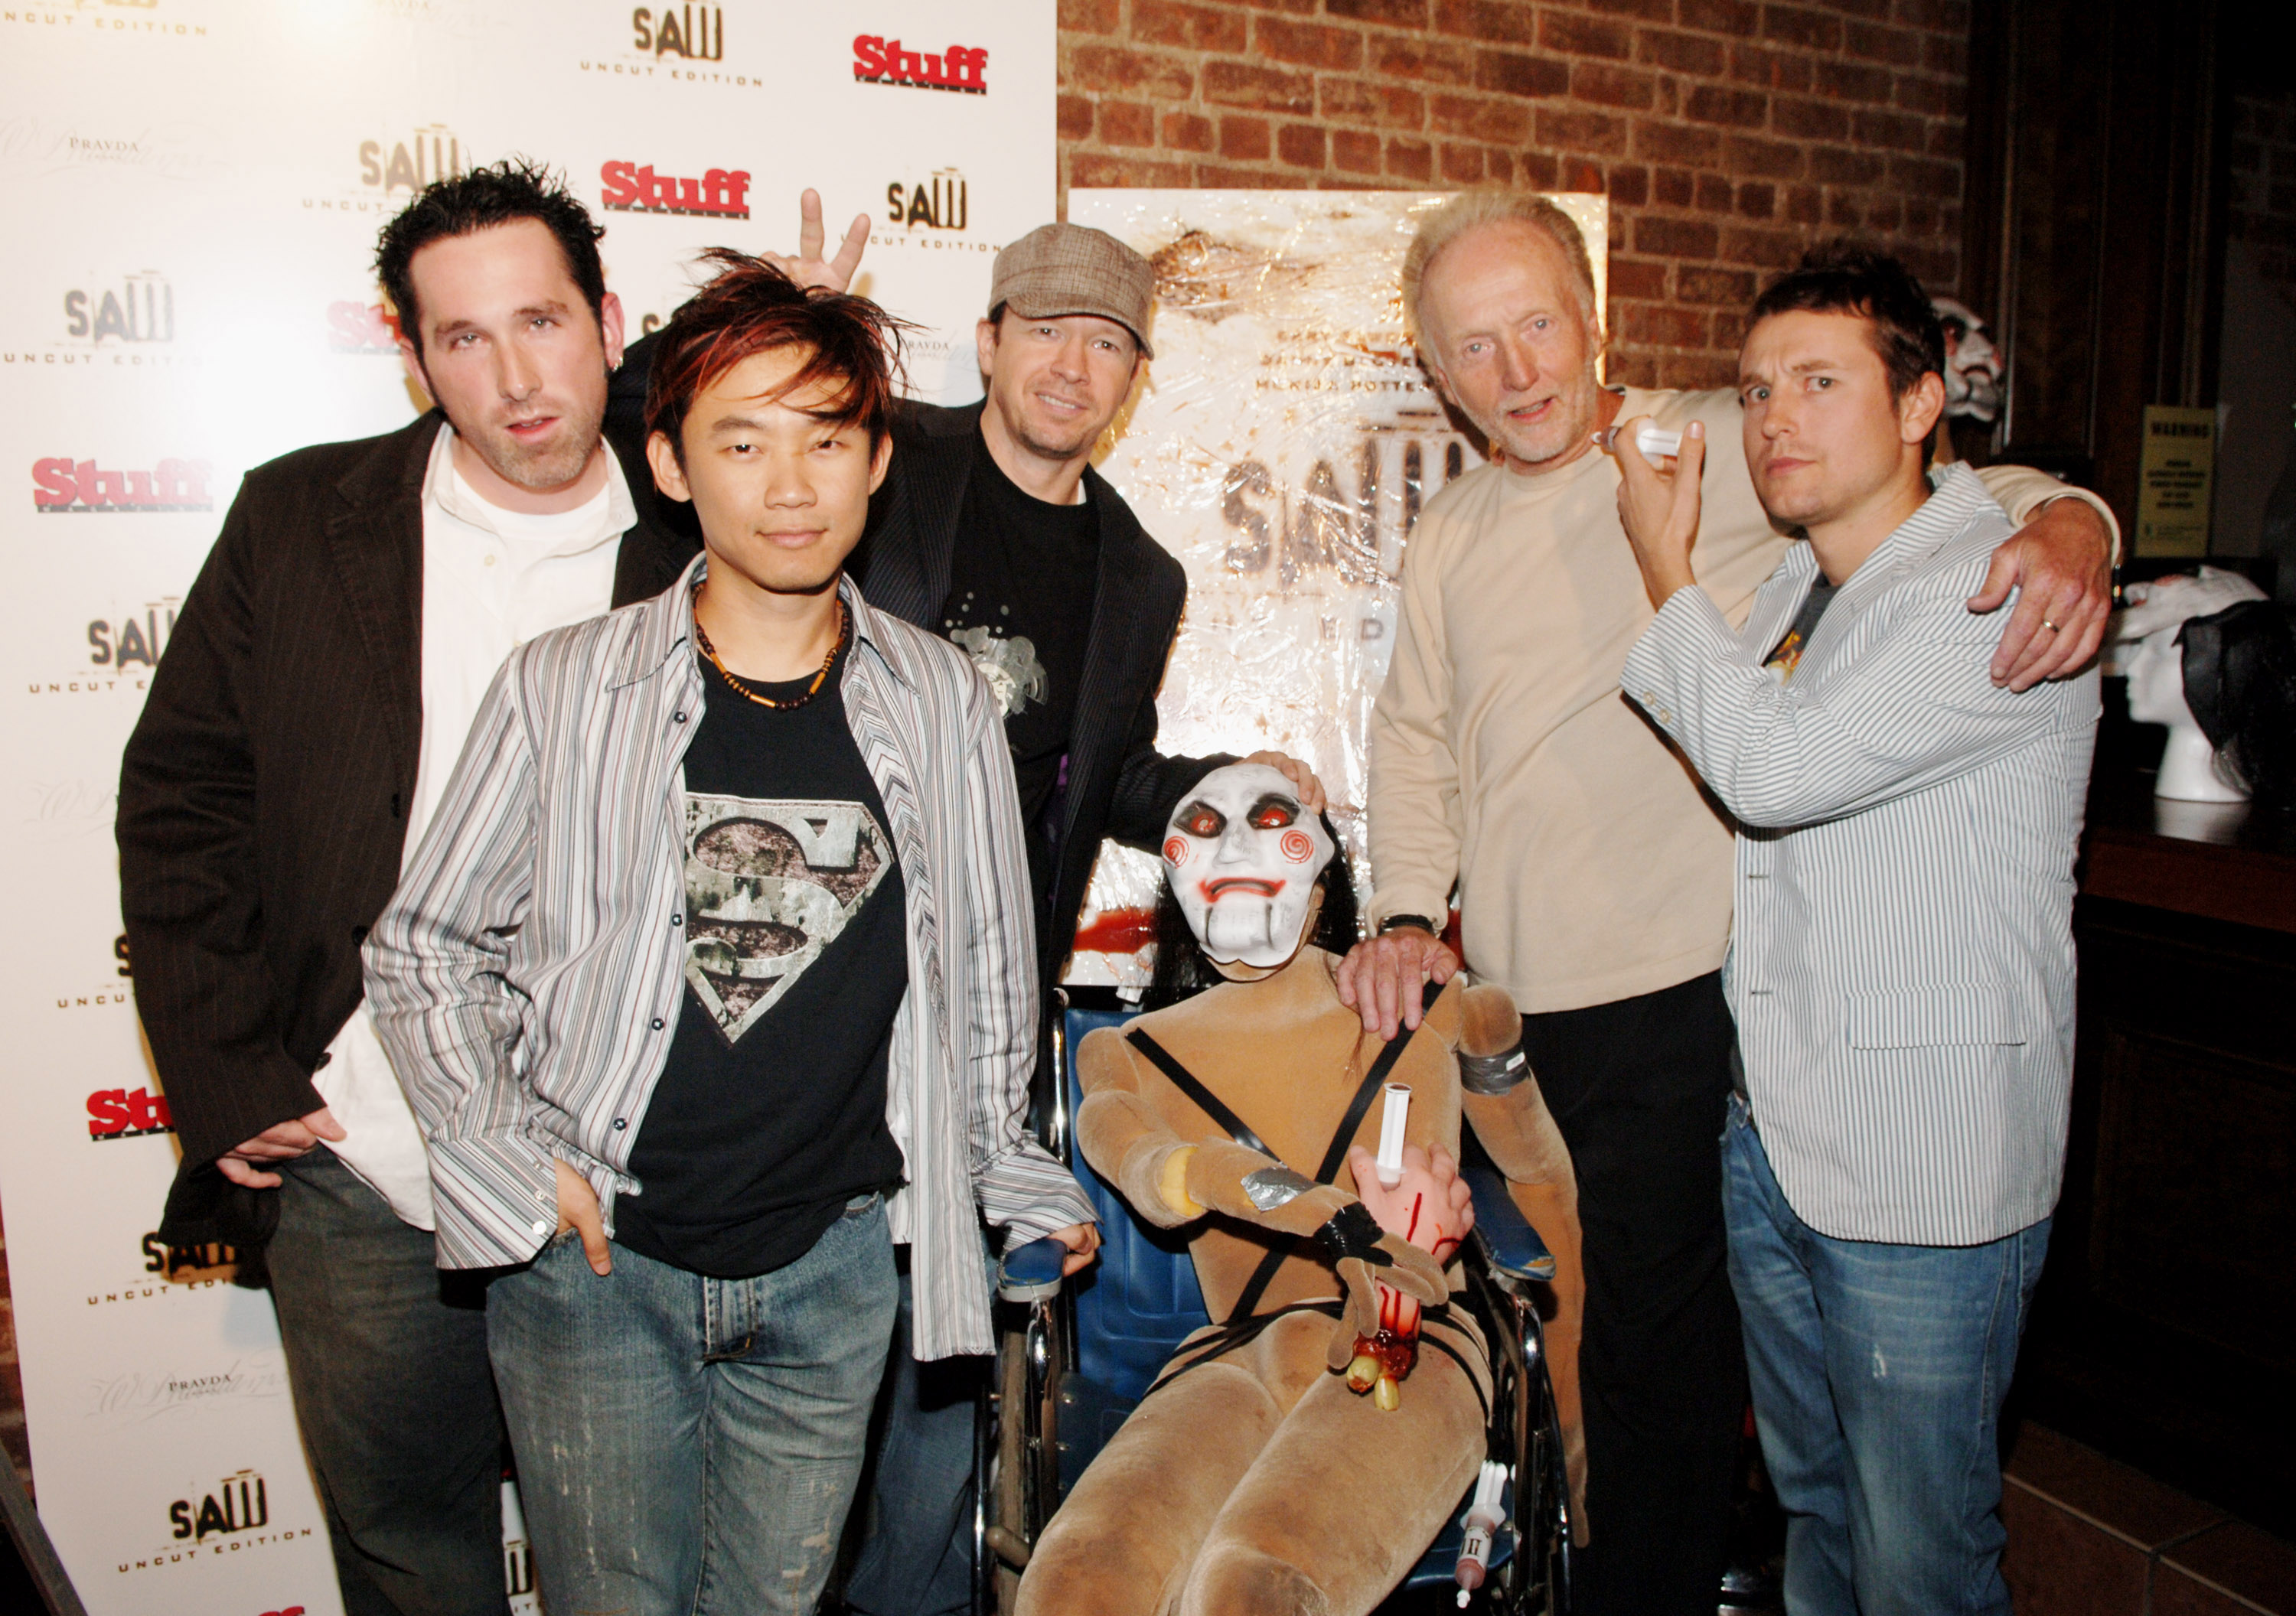 'Saw' DVD Release Party Hosted by Stuff Magazine